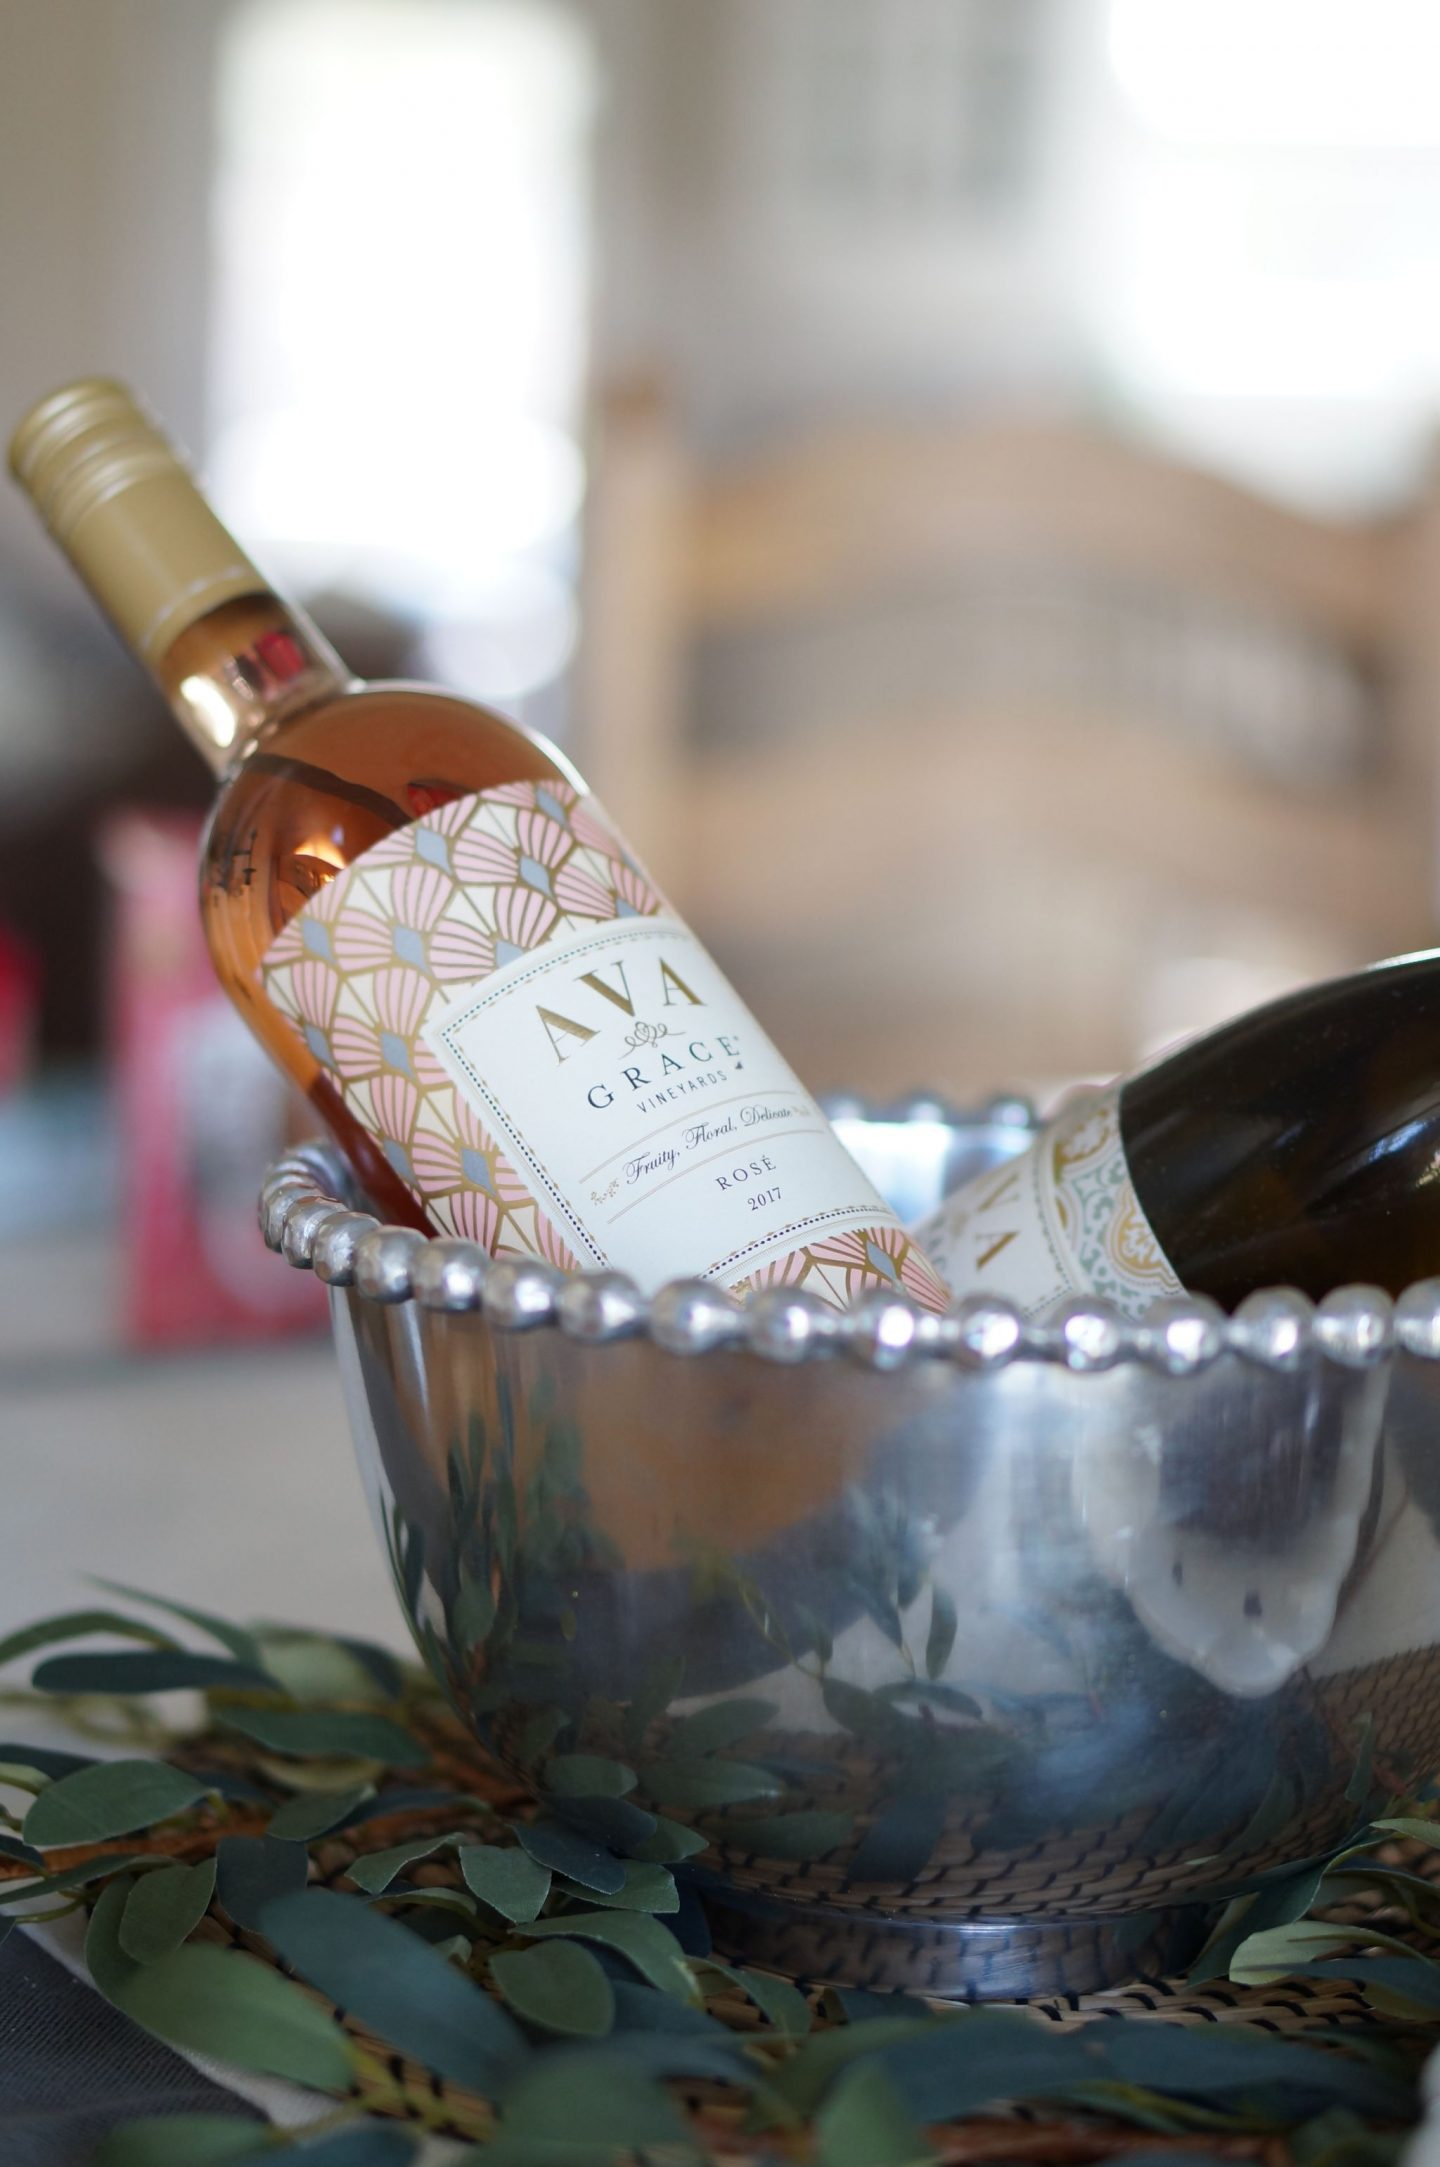 Popular North Carolina style blogger Rebecca Lately shares a date night with AVA Grace wines. Click here to read all about this delicious wine!